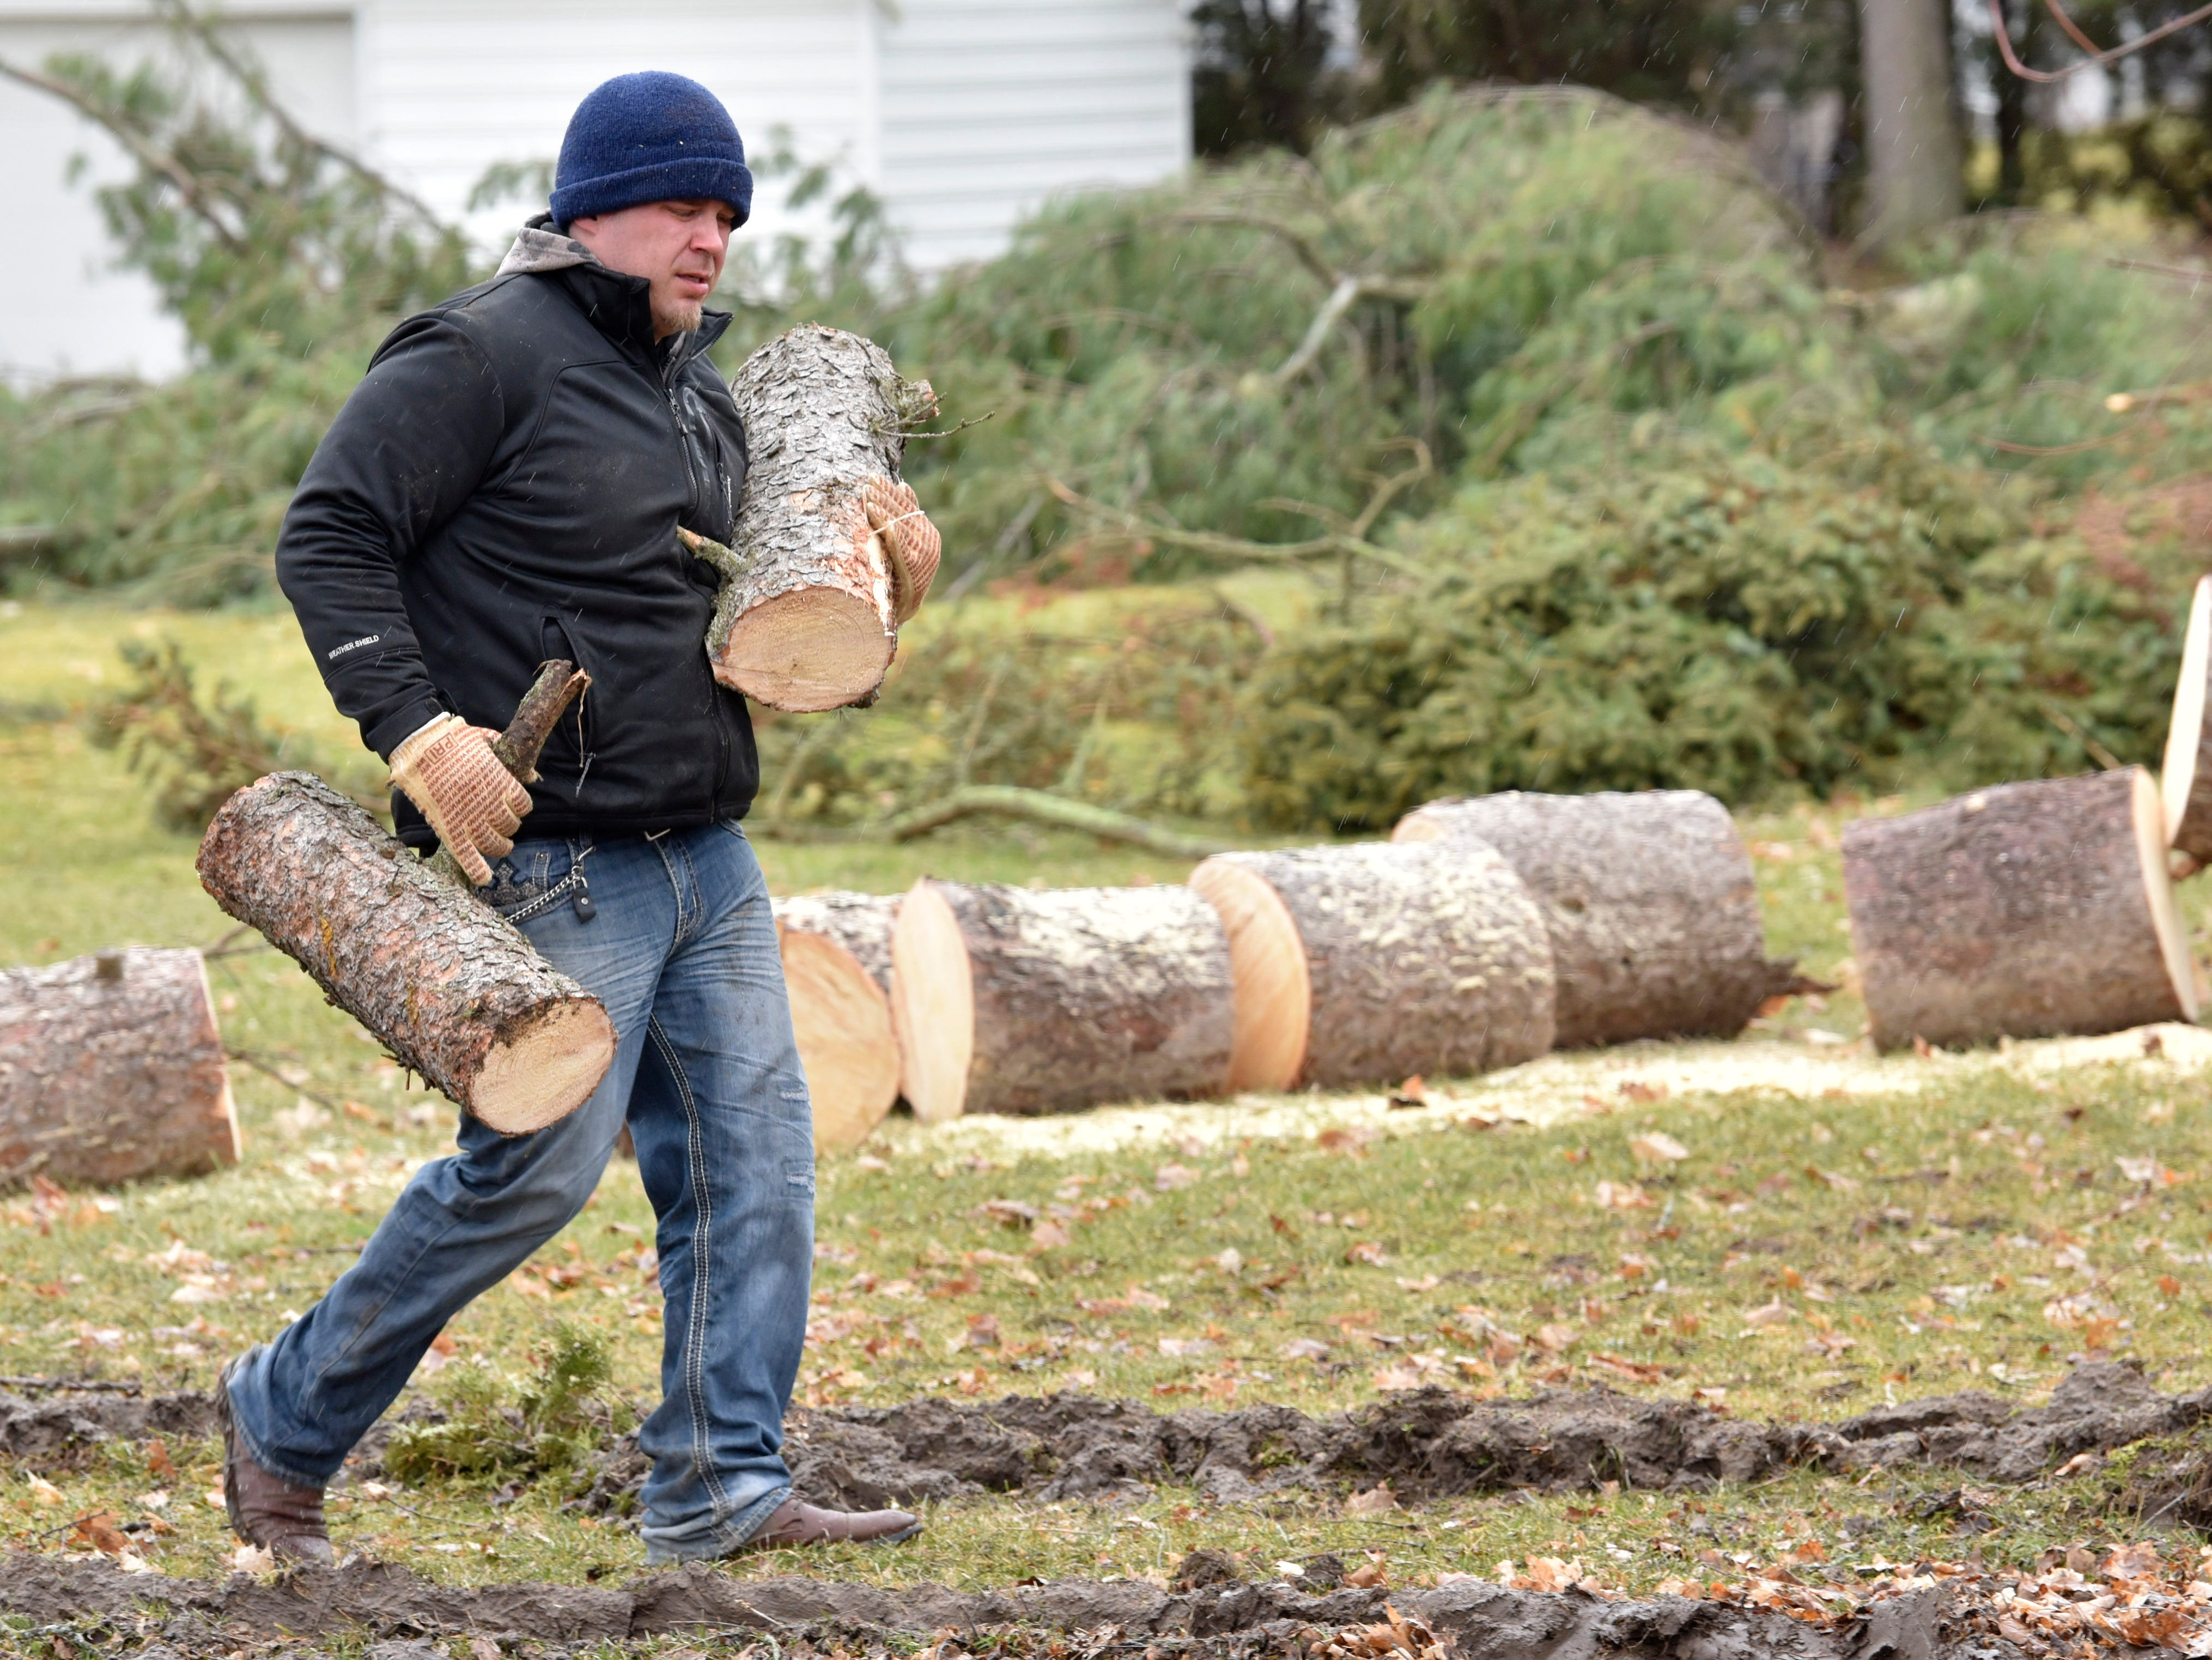 This man carries logs to a waiting truck as community members cut up trees in a yard along Newburg Rd. near Foundry Rd. in Vernon Twp.